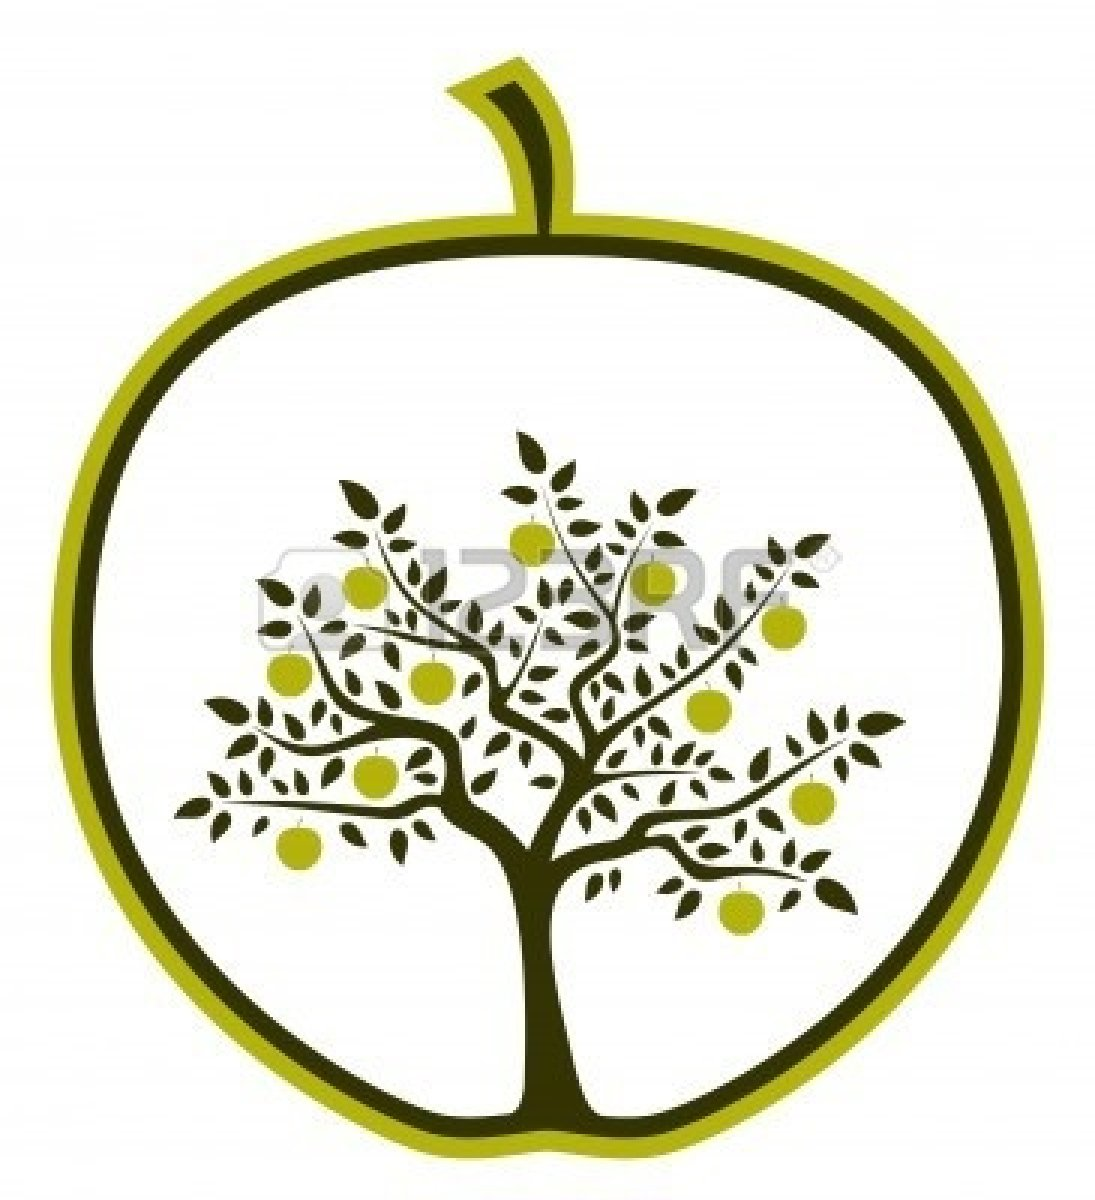 Apple Tree Silhouette - Cliparts.co